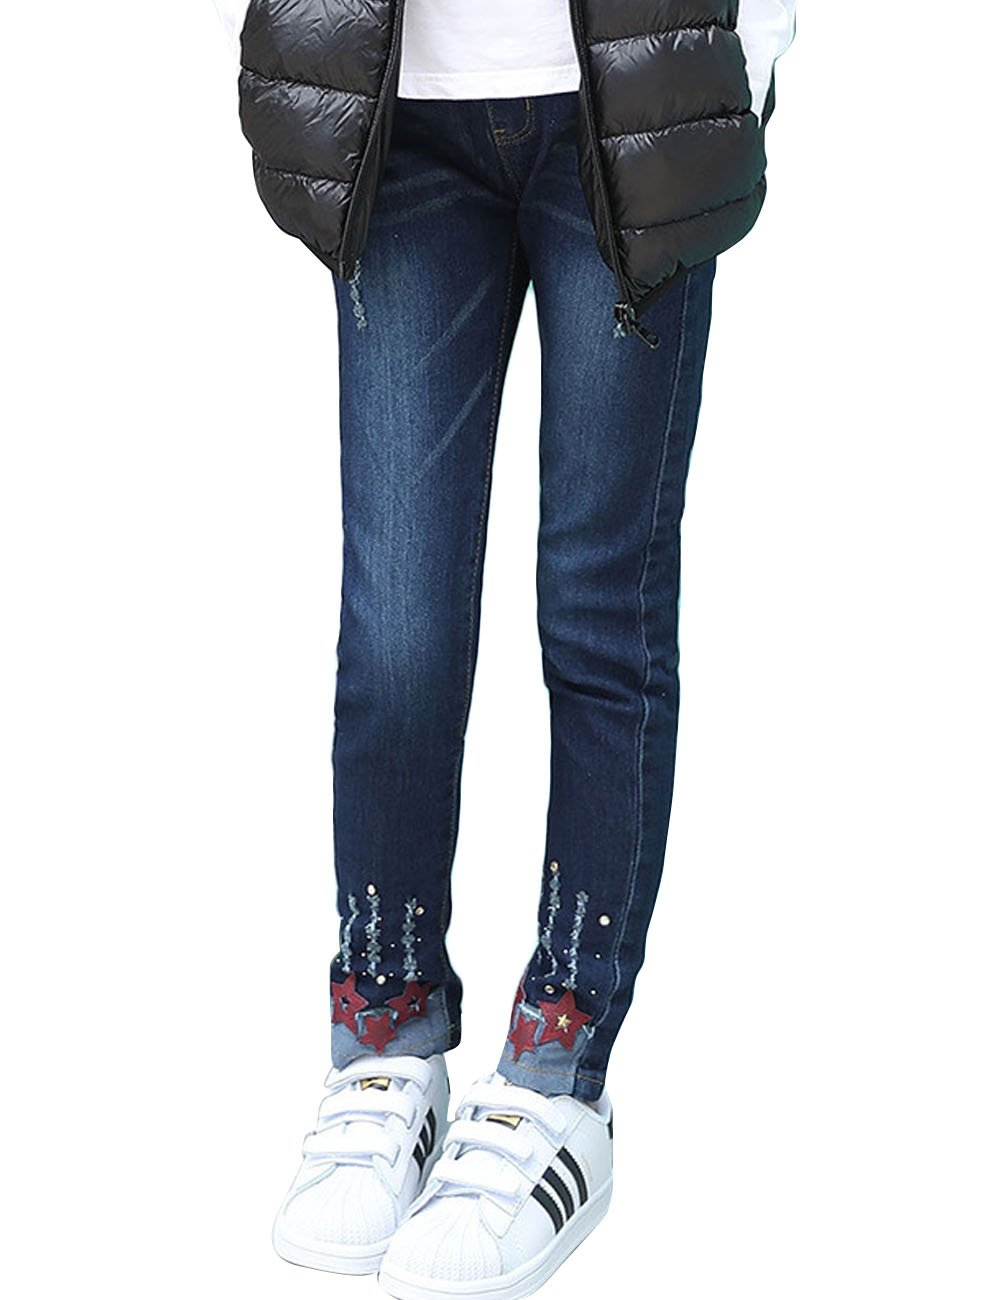 Menschwear Girl's Cotton Blue Denim Jeans Stone Washed Casual Girl Jeans (140cm,Blue)